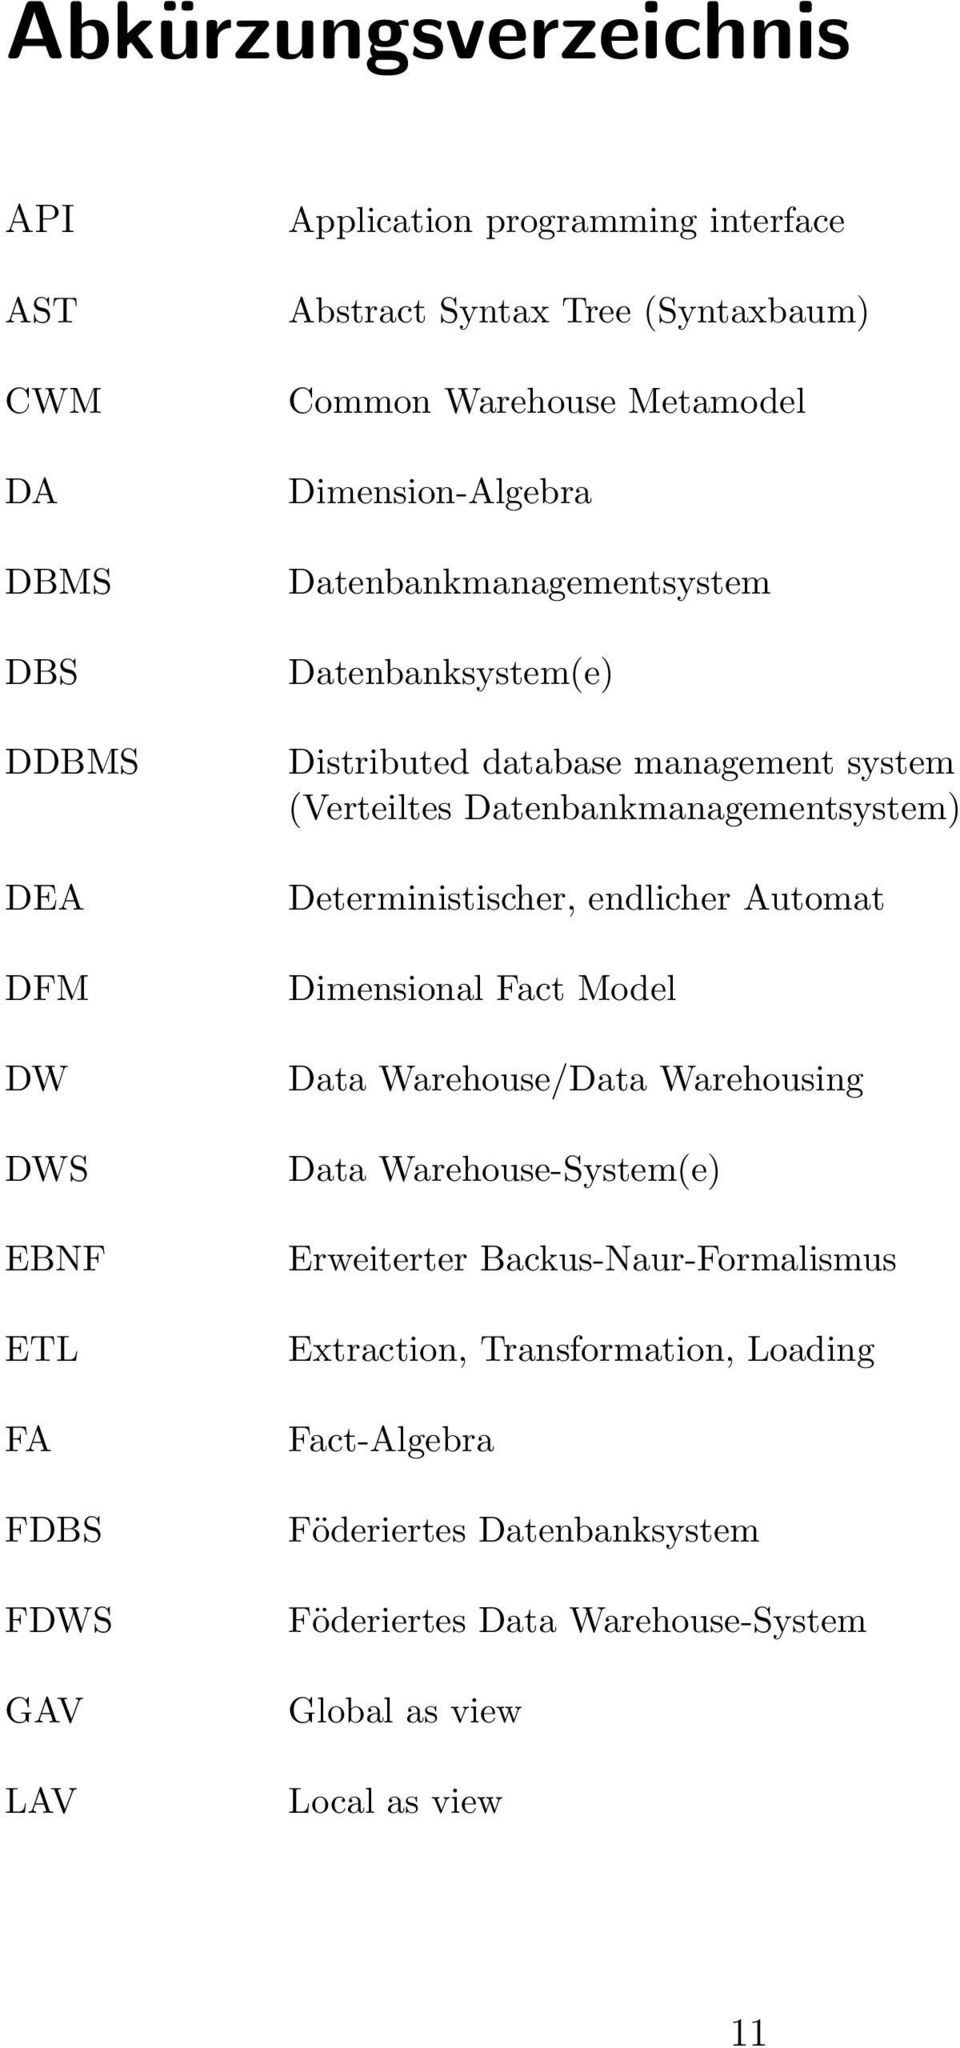 Datenbankmanagementsystem) Deterministischer, endlicher Automat Dimensional Fact Model Data Warehouse/Data Warehousing Data Warehouse-System(e) Erweiterter